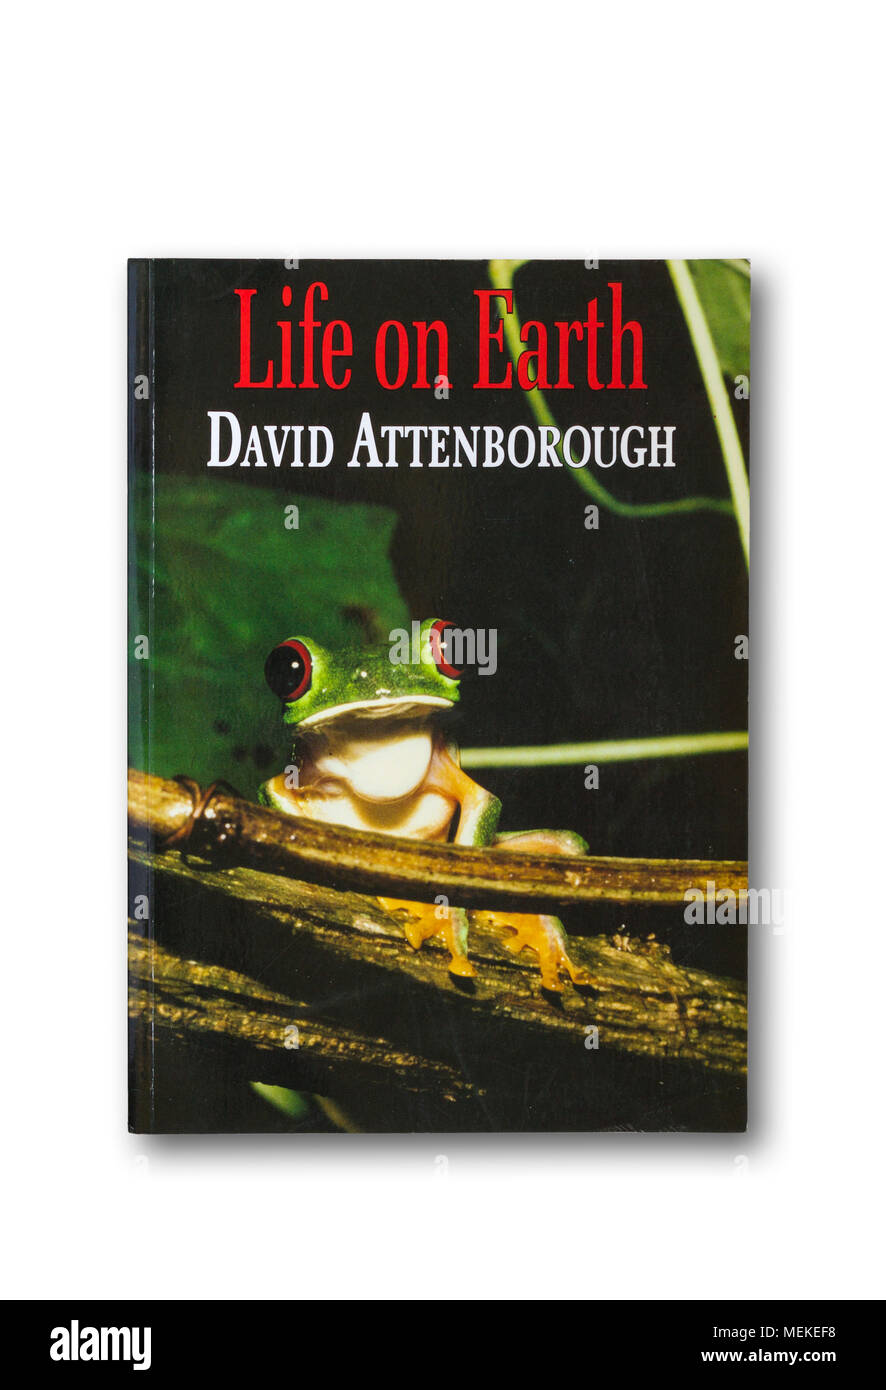 'Life on Earth' non-fictional book on evolution and animal life to accompany TV series by David Attenborough - Stock Image